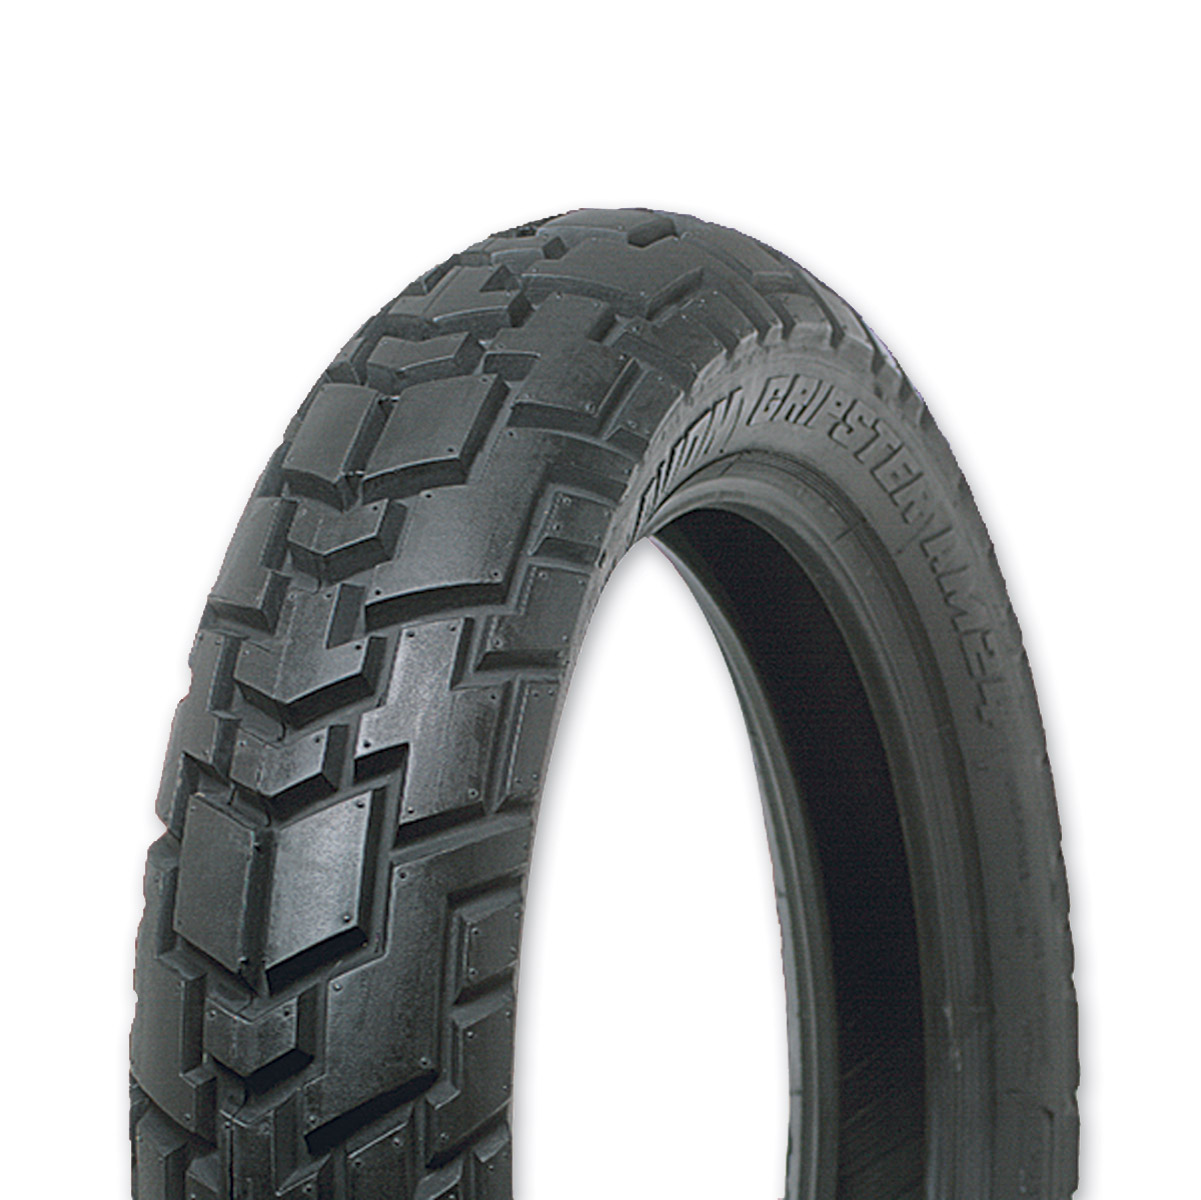 AVON AM24 Gripster 90/90-21 Front Tire